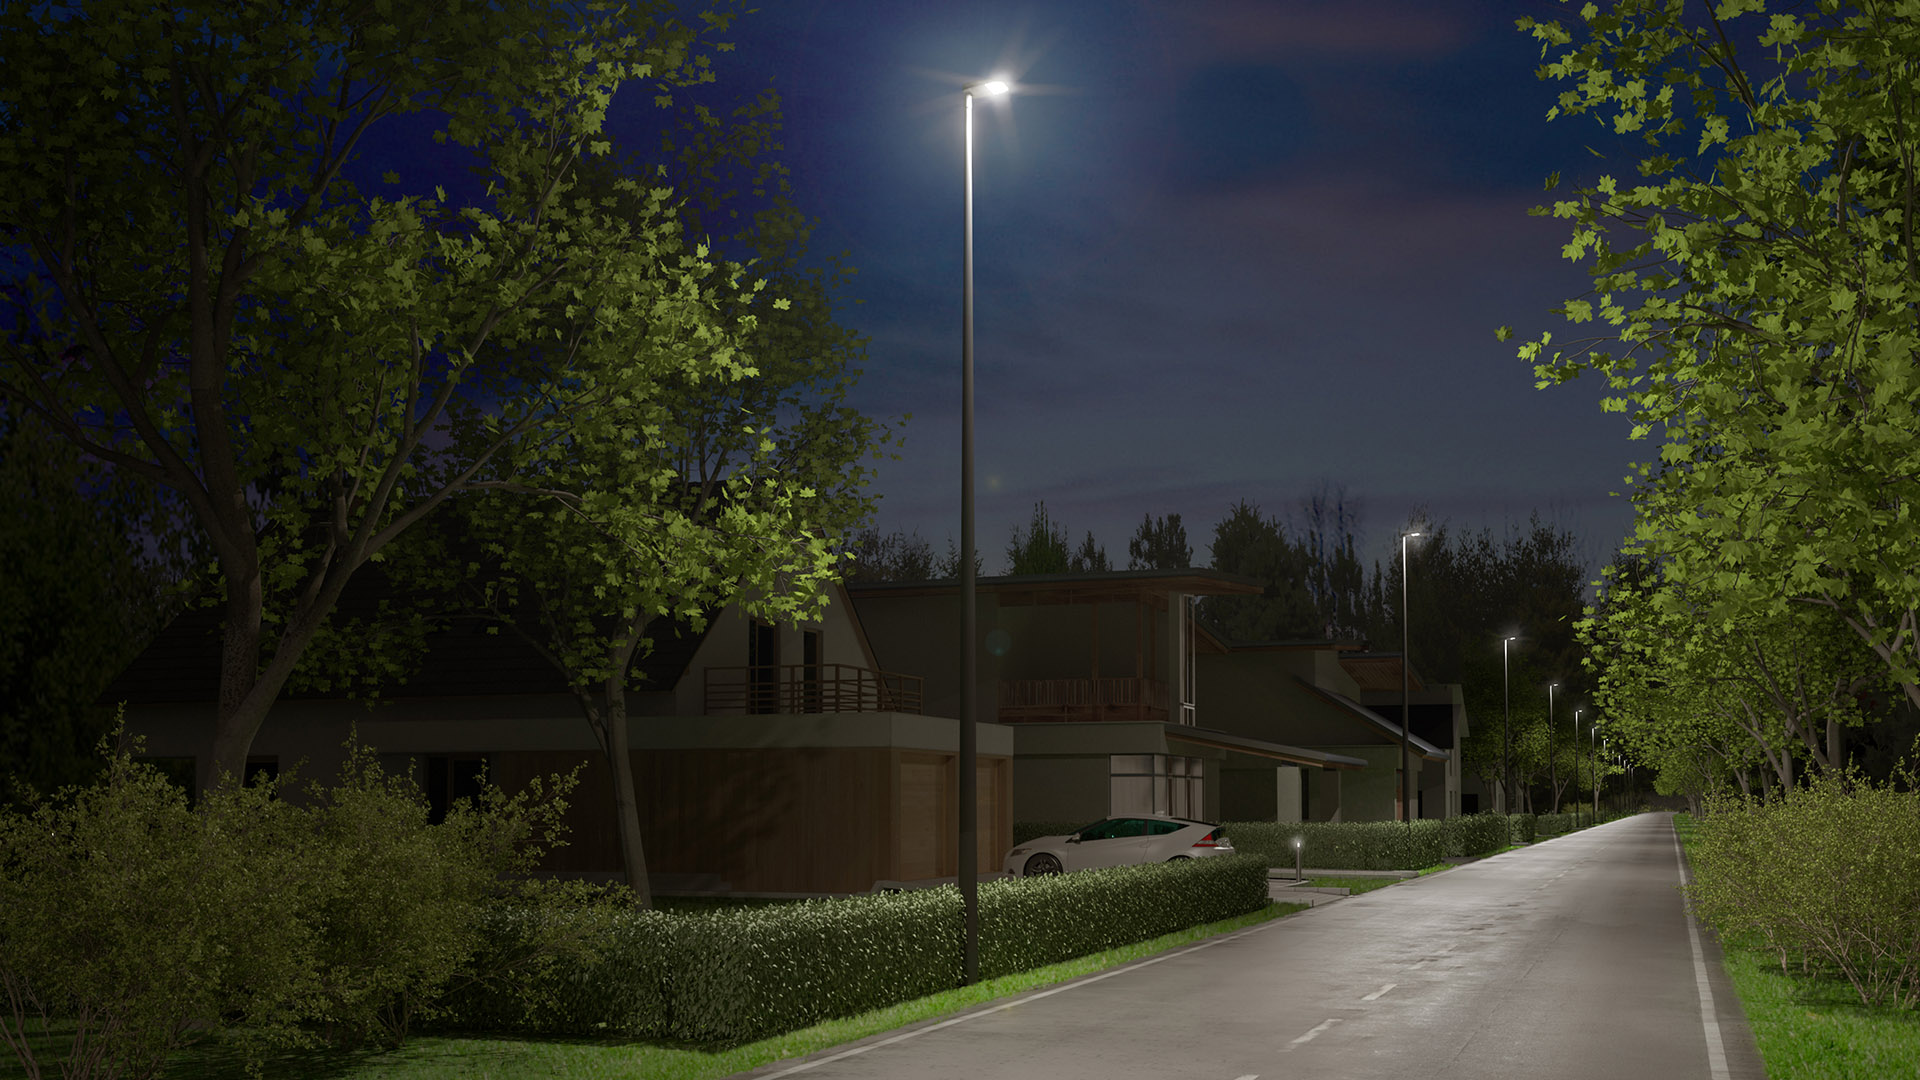 Vega S brings modern opportunities to street and area lighting